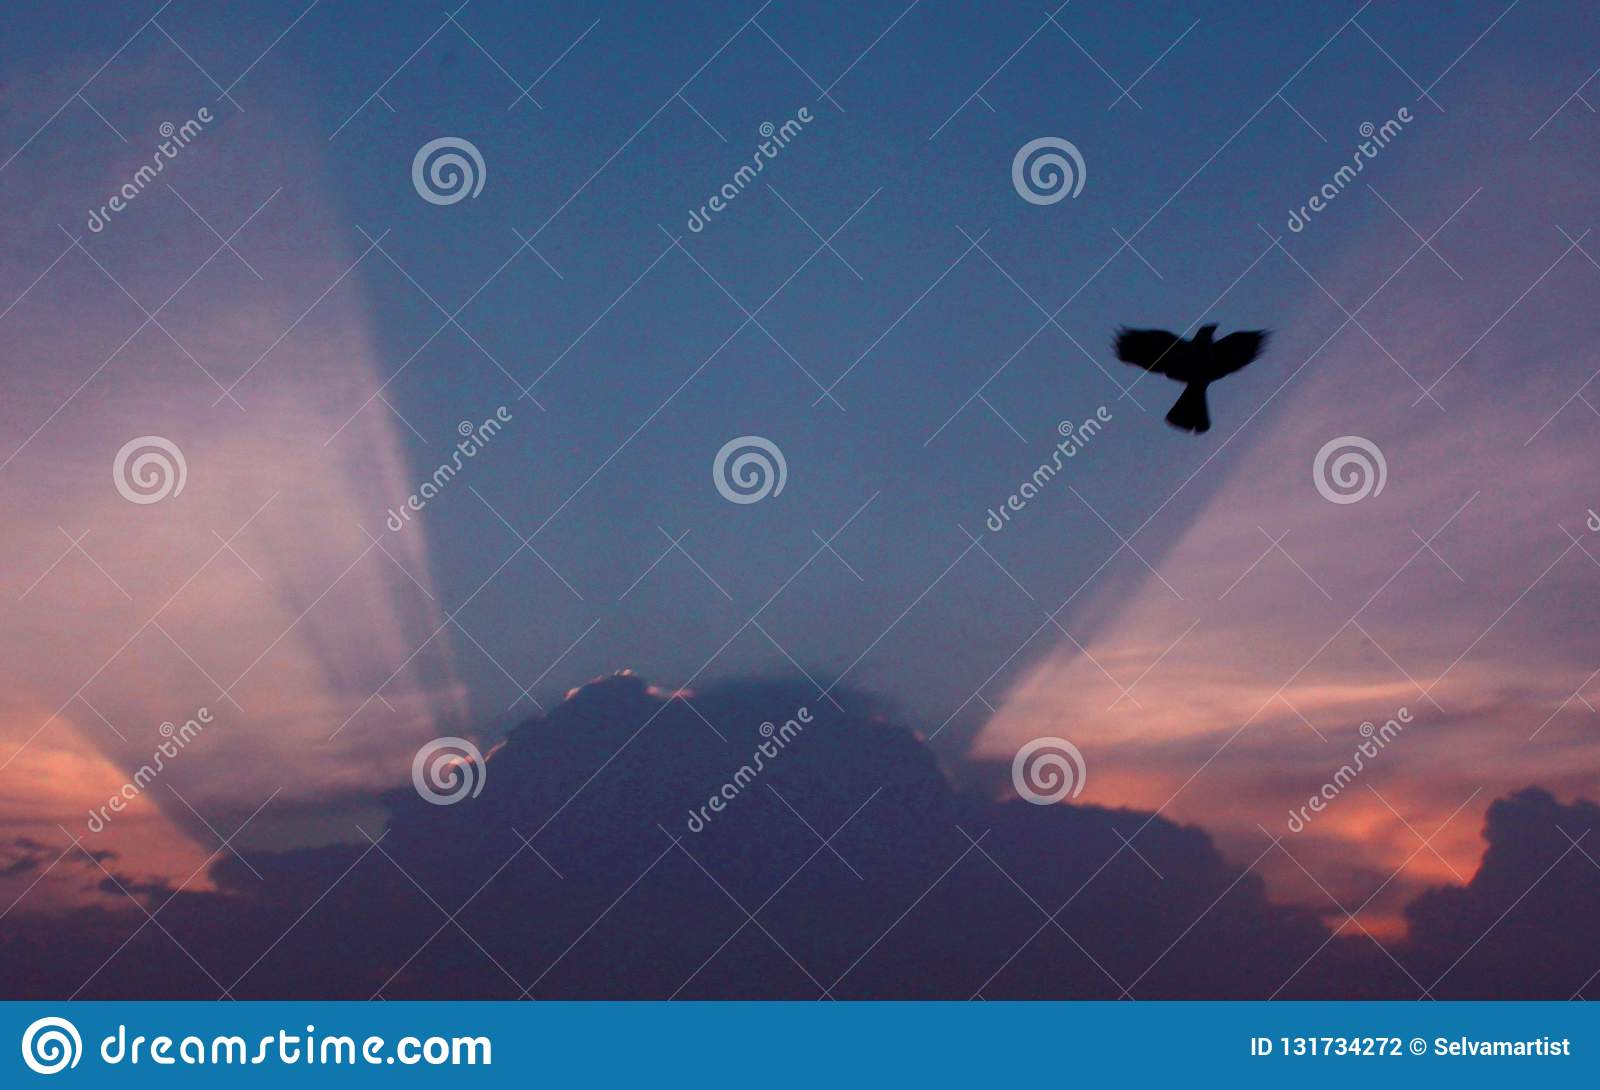 Sunrise and asunset with clouds and rays.